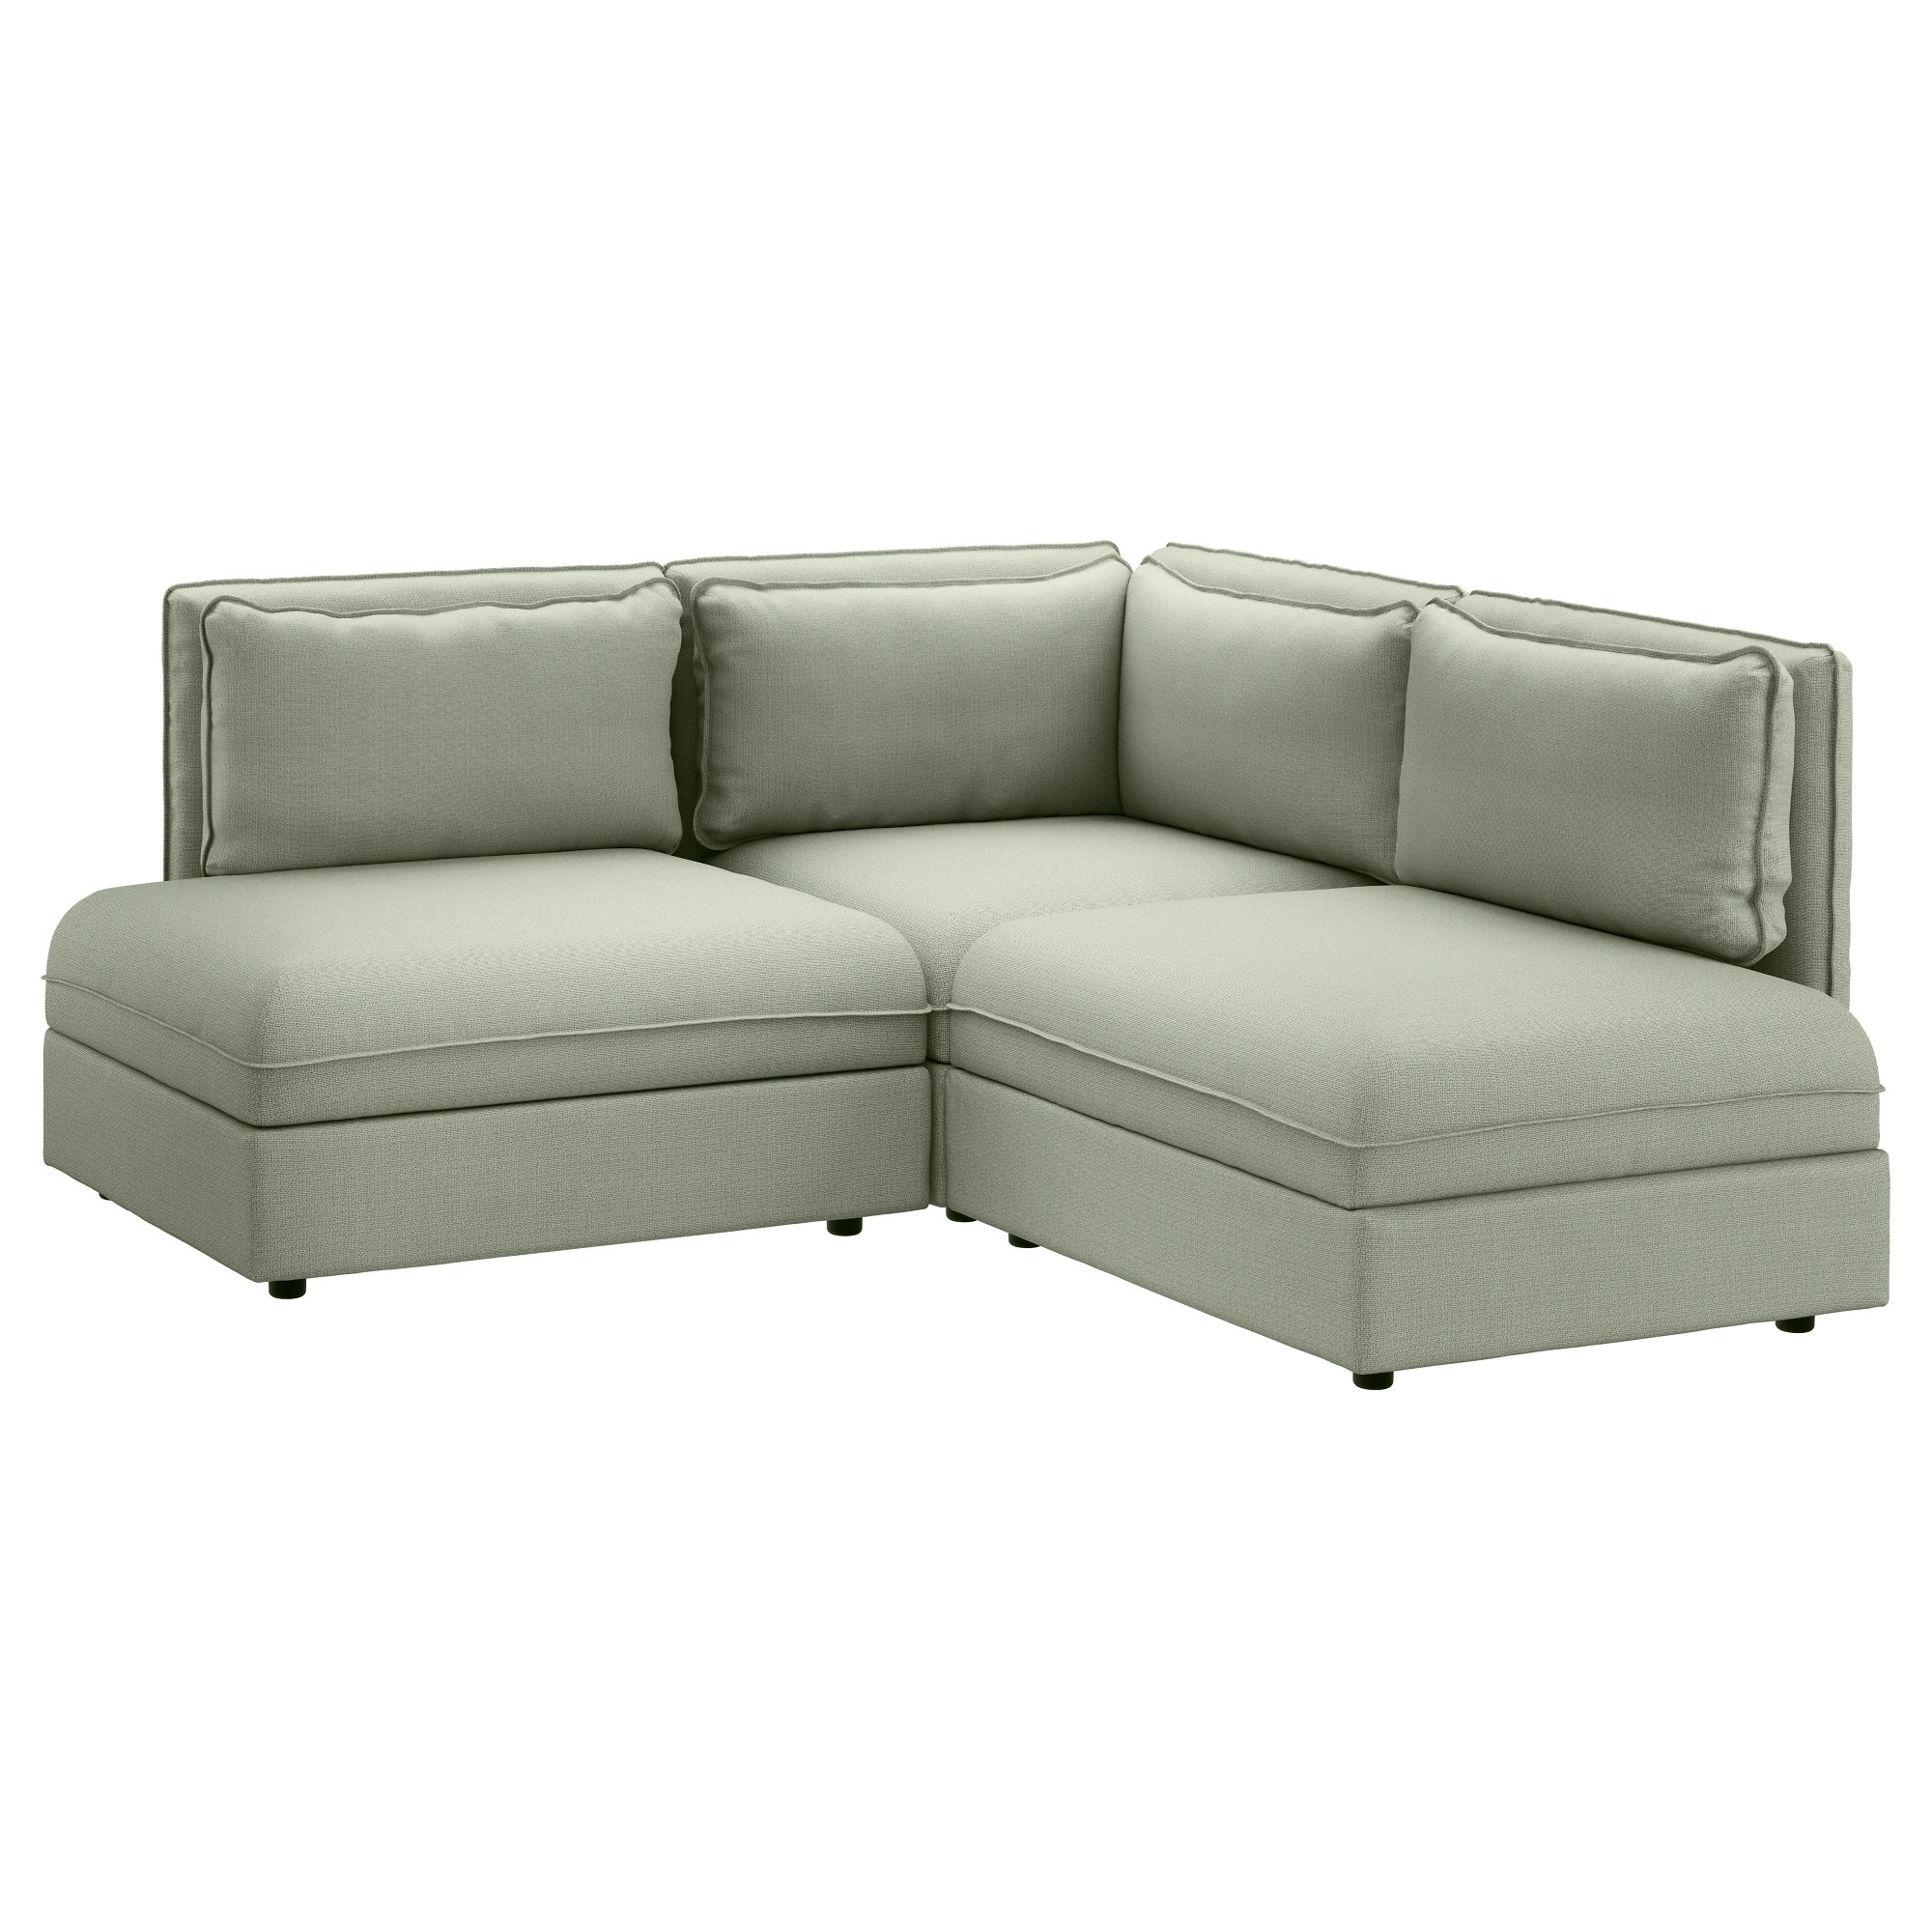 Ideas: Amazing Ikea Loveseat With New Contemporary Fixing Ability Inside 2018 Ikea Ektorp Loveseat Chaises (View 11 of 15)